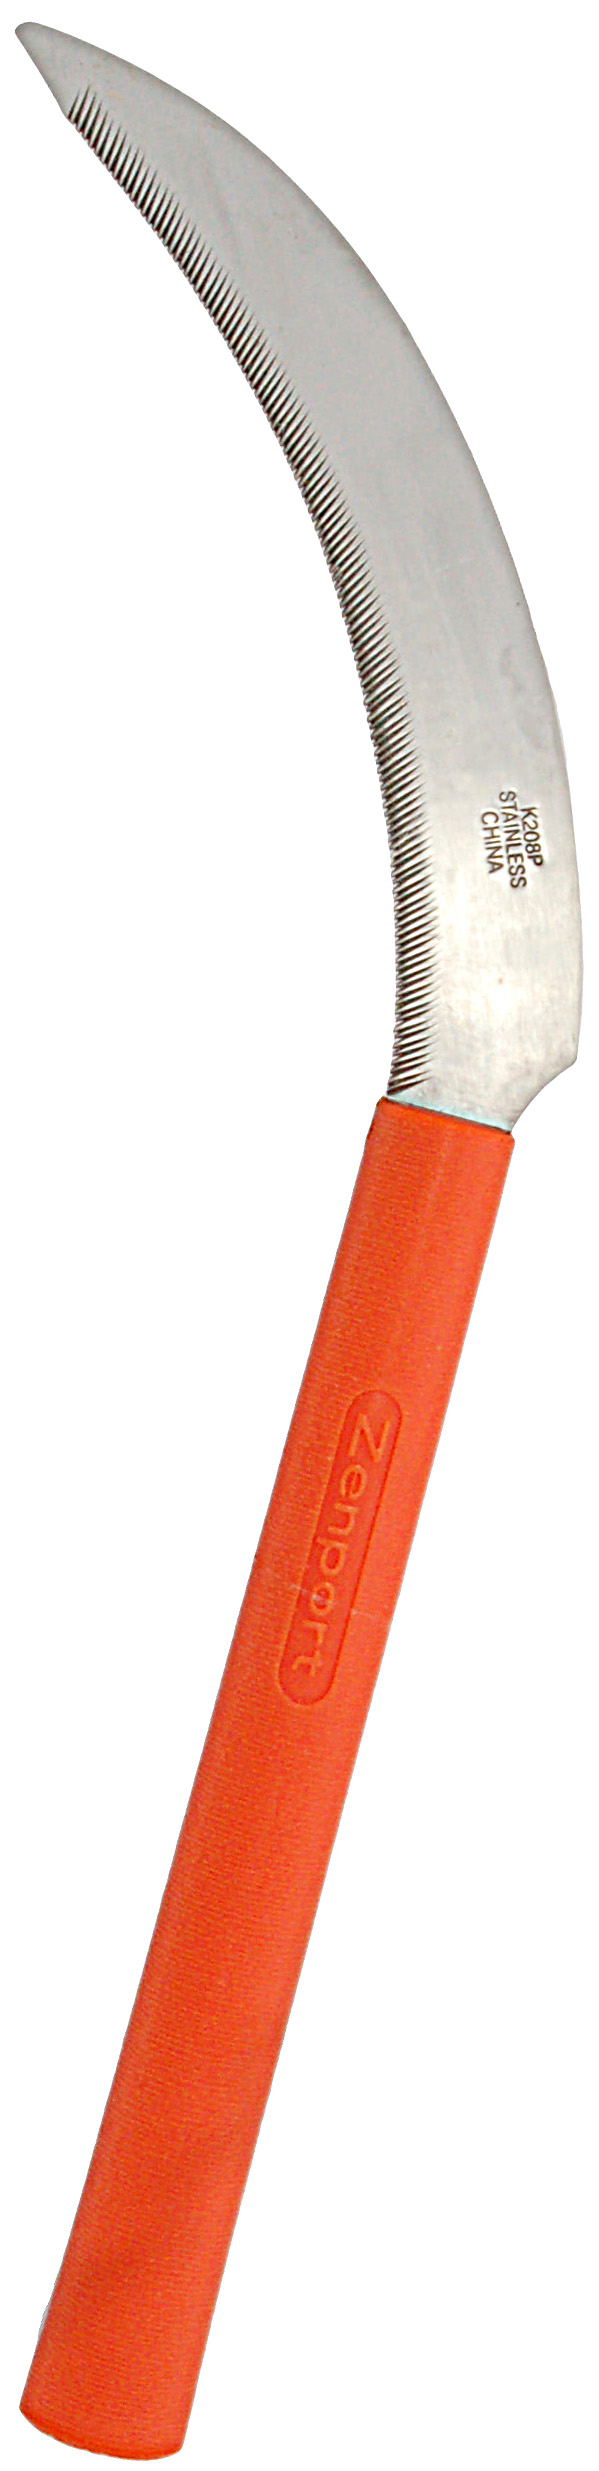 Sickle K208P Harvest Sickle, Orange Plastic Handle, Light Serration, 6.5-Inch Stainless Steel Blade